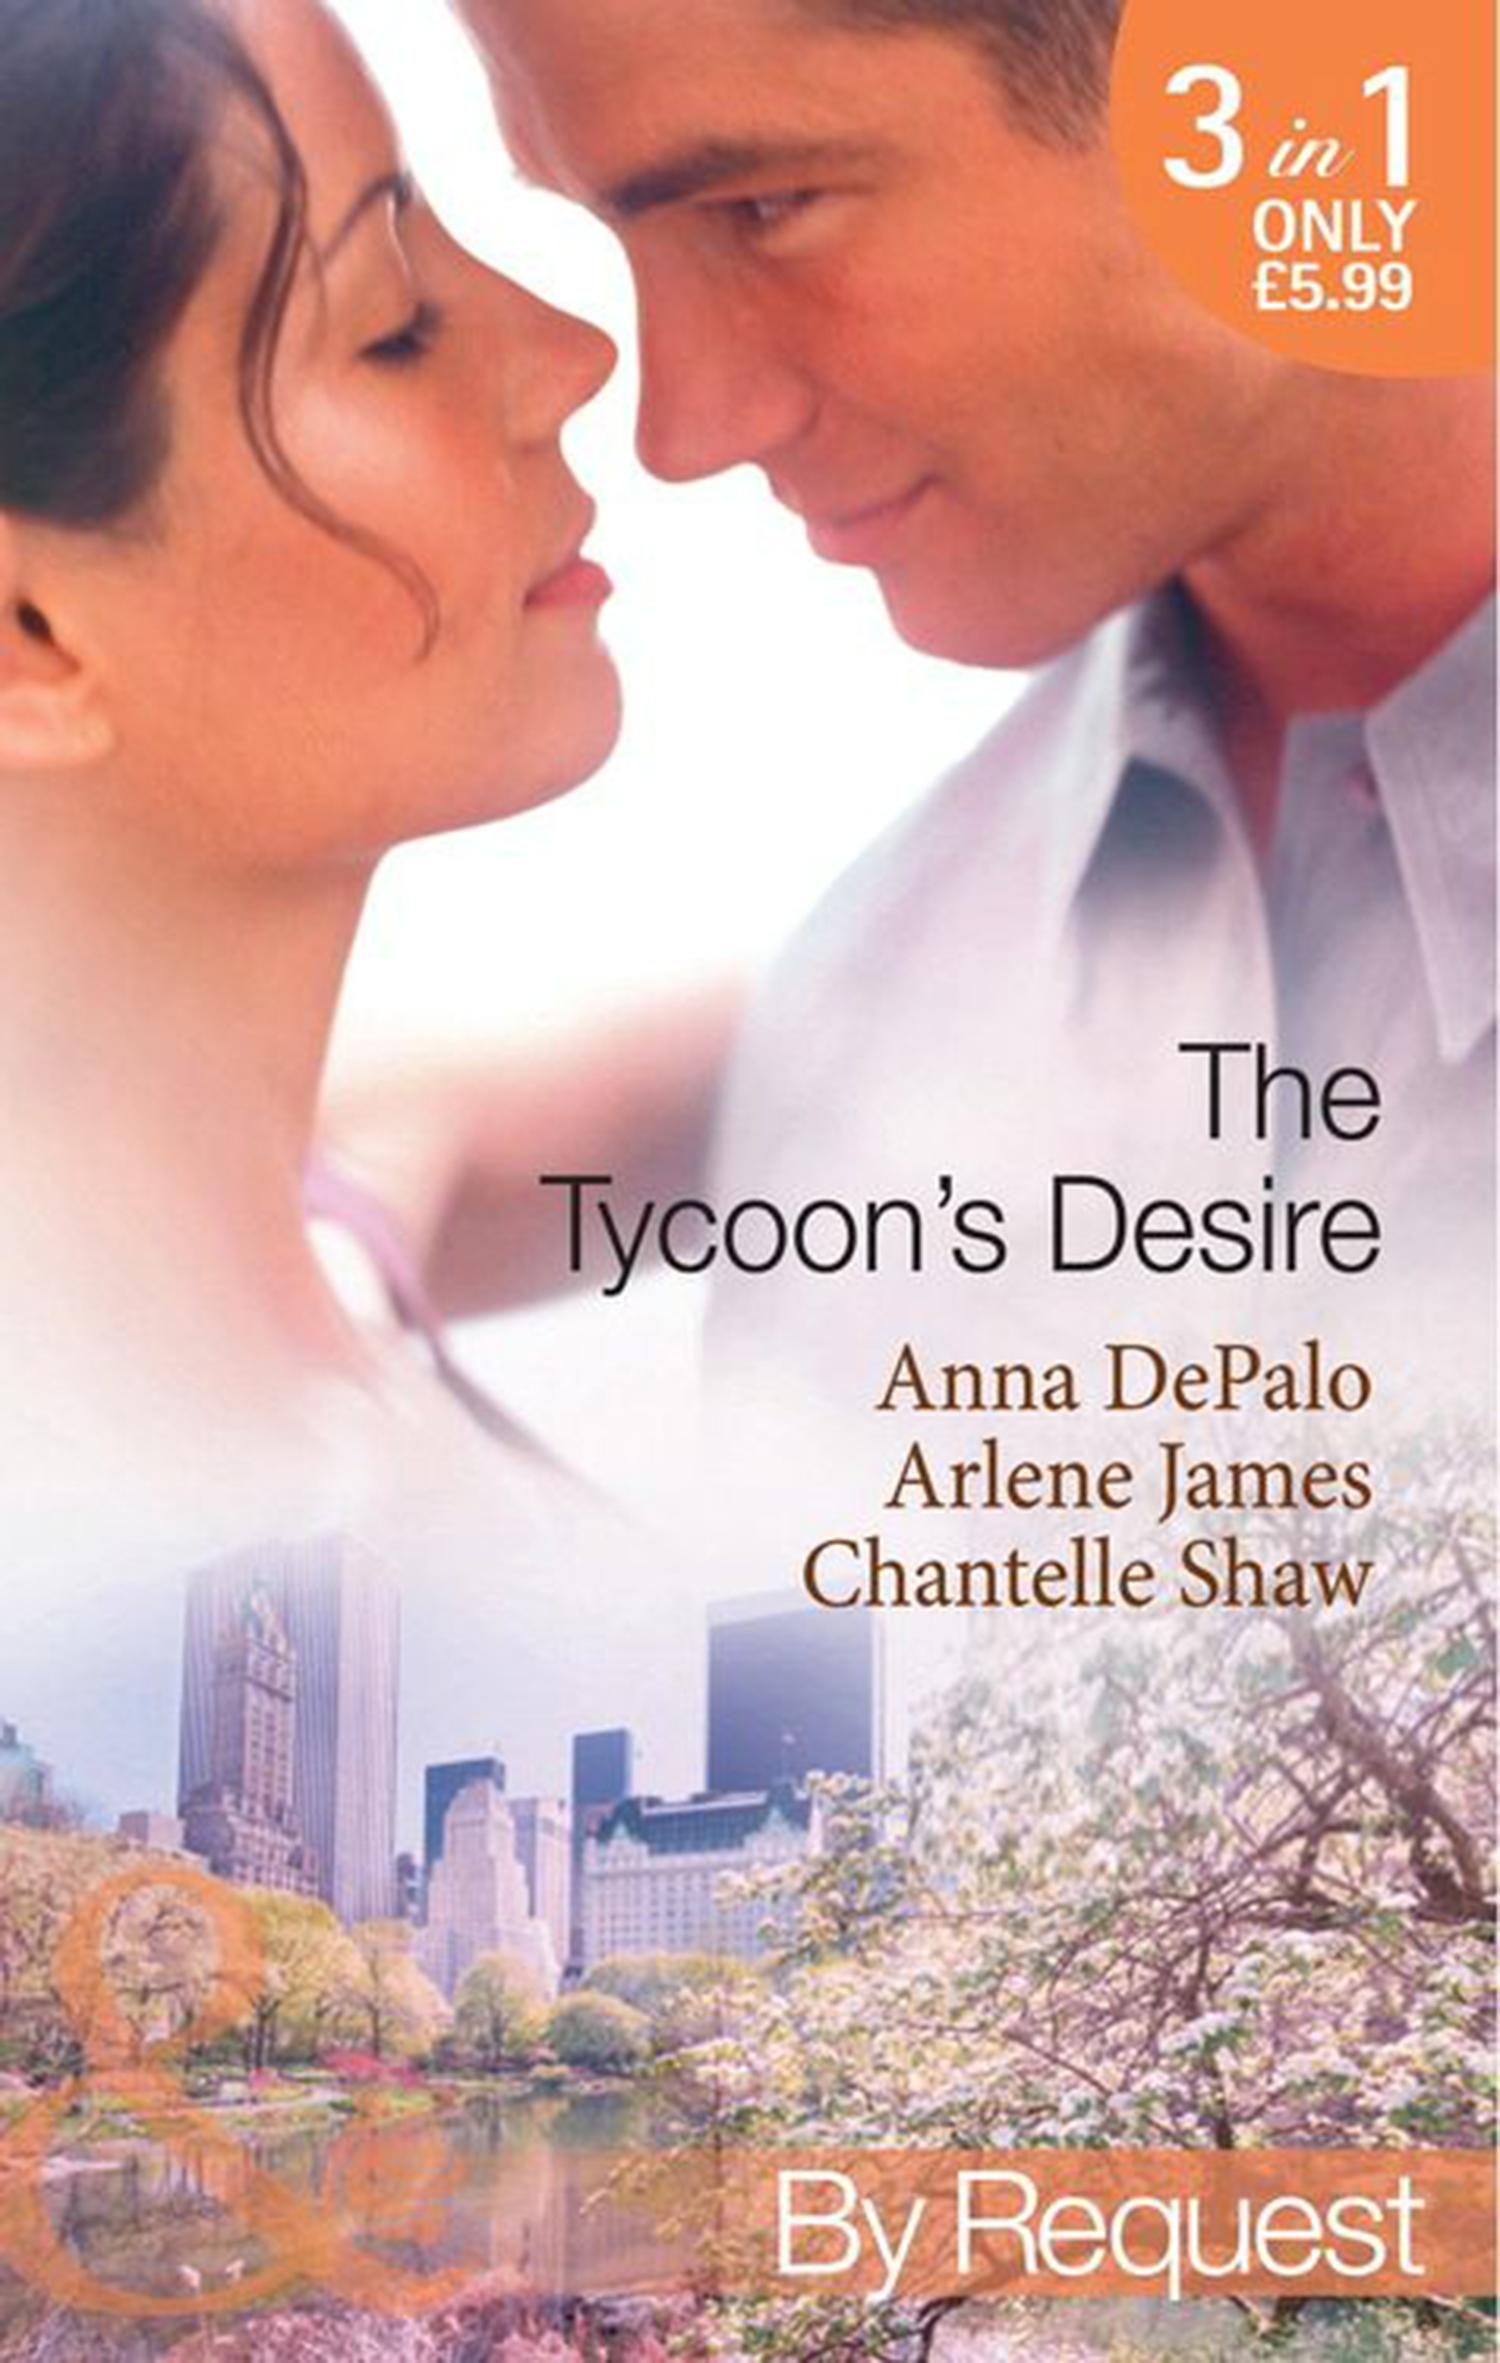 The Tycoon's Desire (Mills & Boon by Request)